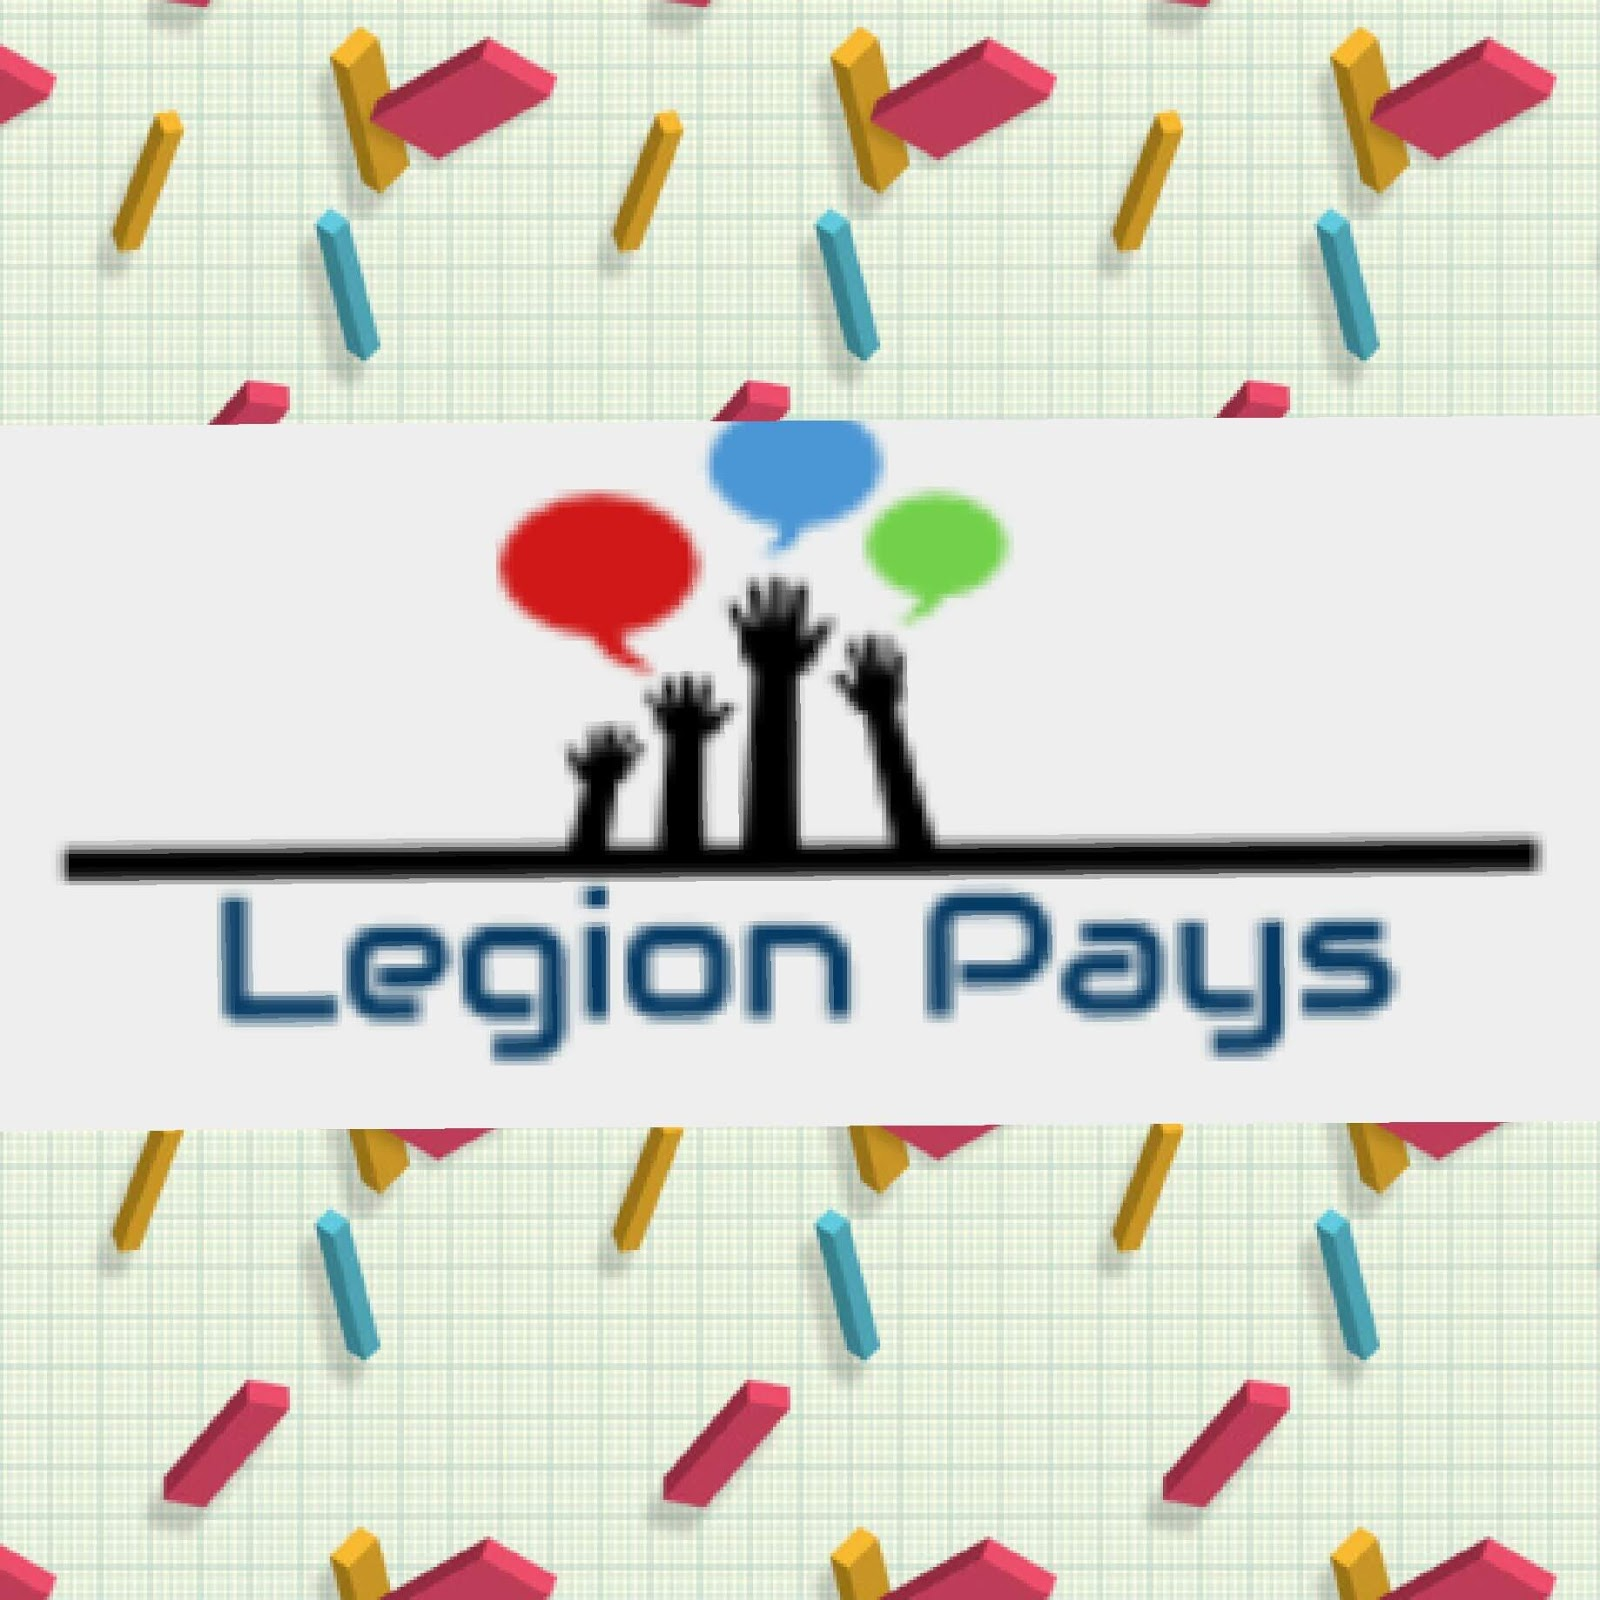 legionpays for lexhansplace3